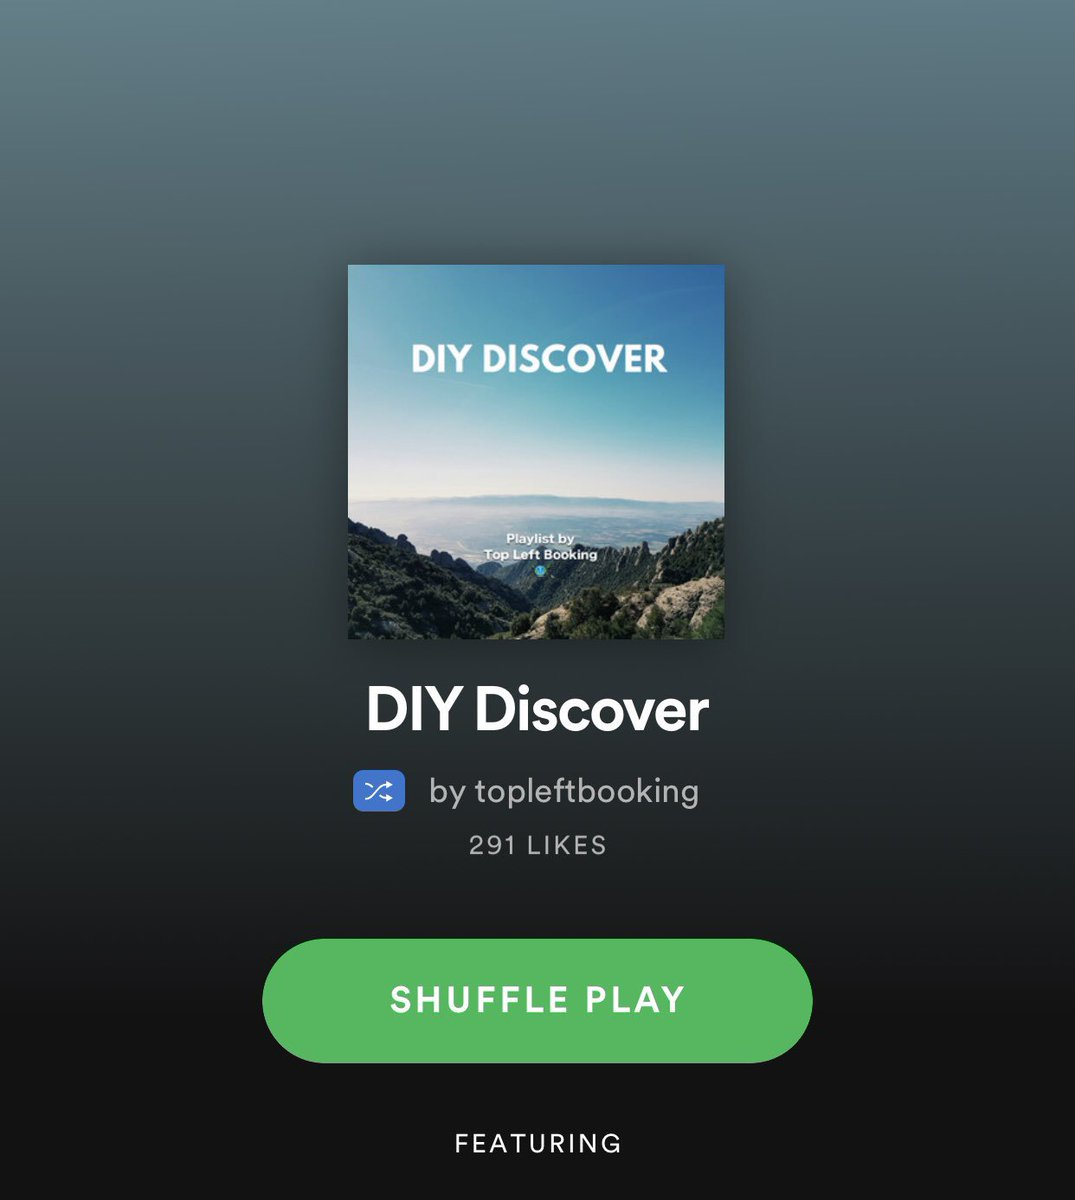 100% DIY Musicians #Spotify #Playlist   Check it out! 👉 https://open.spotify.com/user/topleftbooking/playlist/0cu0YQXkOUMIkhIIwgIjjO?si=O3j0Iw1dTE2EJUCWI_C6yw …  🌎 DM to submit your music 🌎 #localband #singersongwriter #unsignedmusic